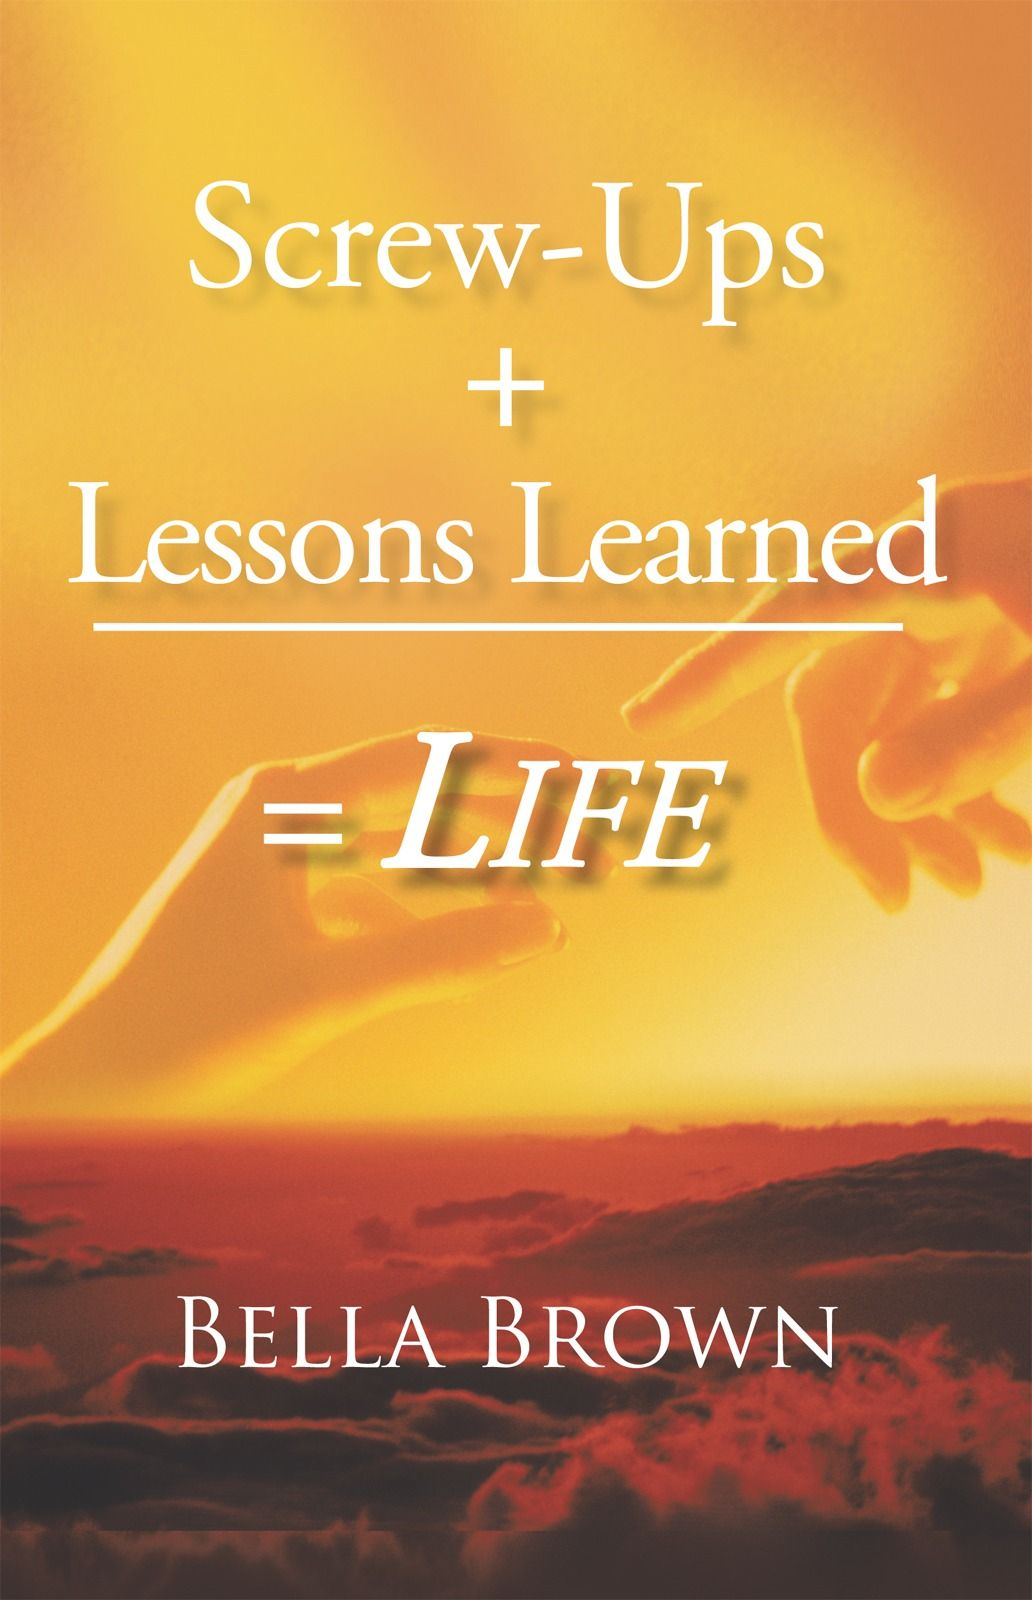 Screw-Ups + Lessons Learned = Life